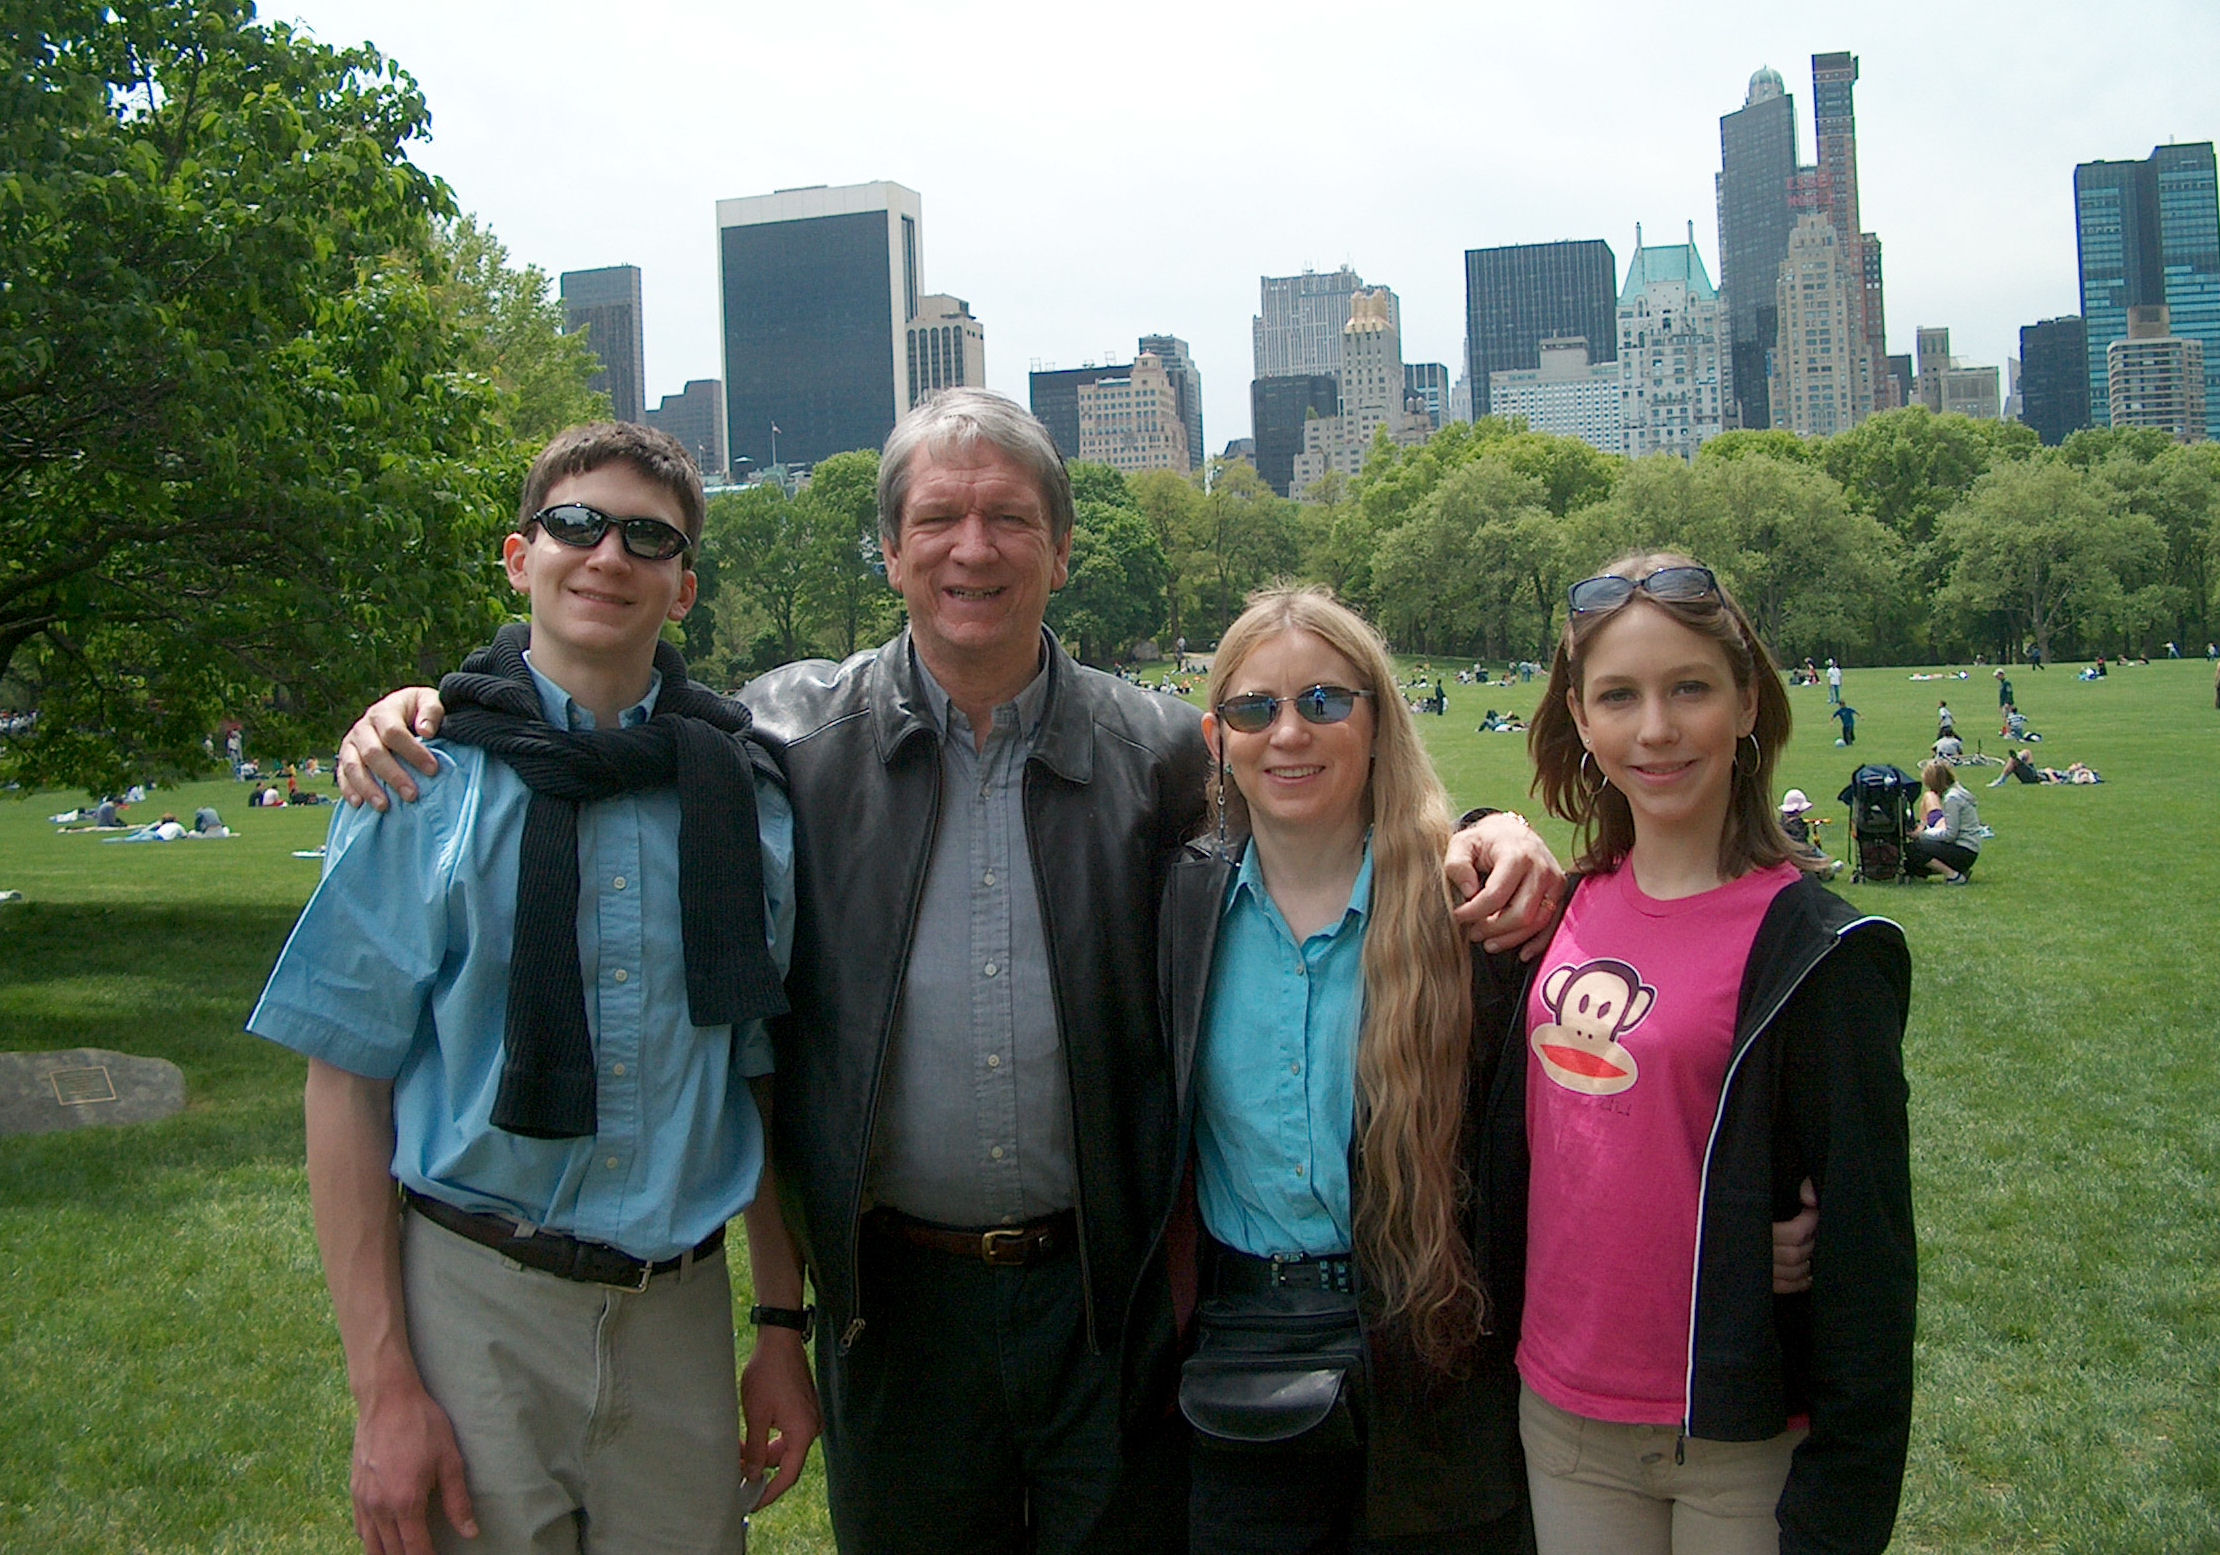 Will, Terry, Deb, and Christina in Central Park